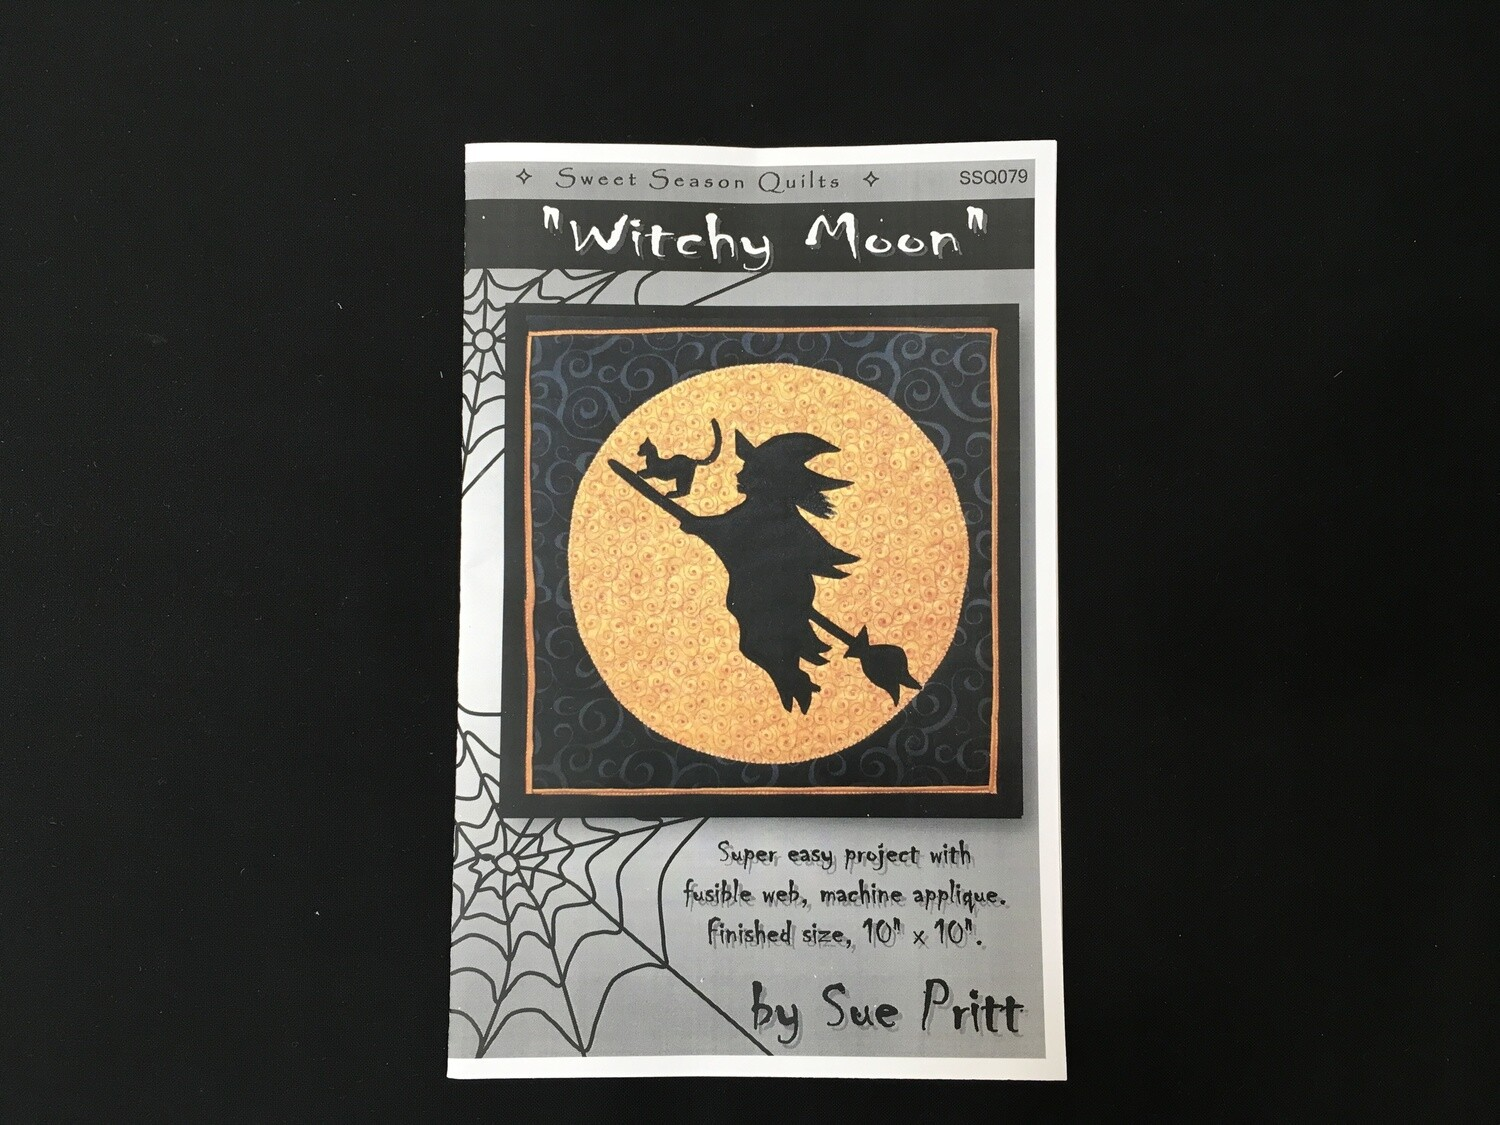 Witchy Moon pattern